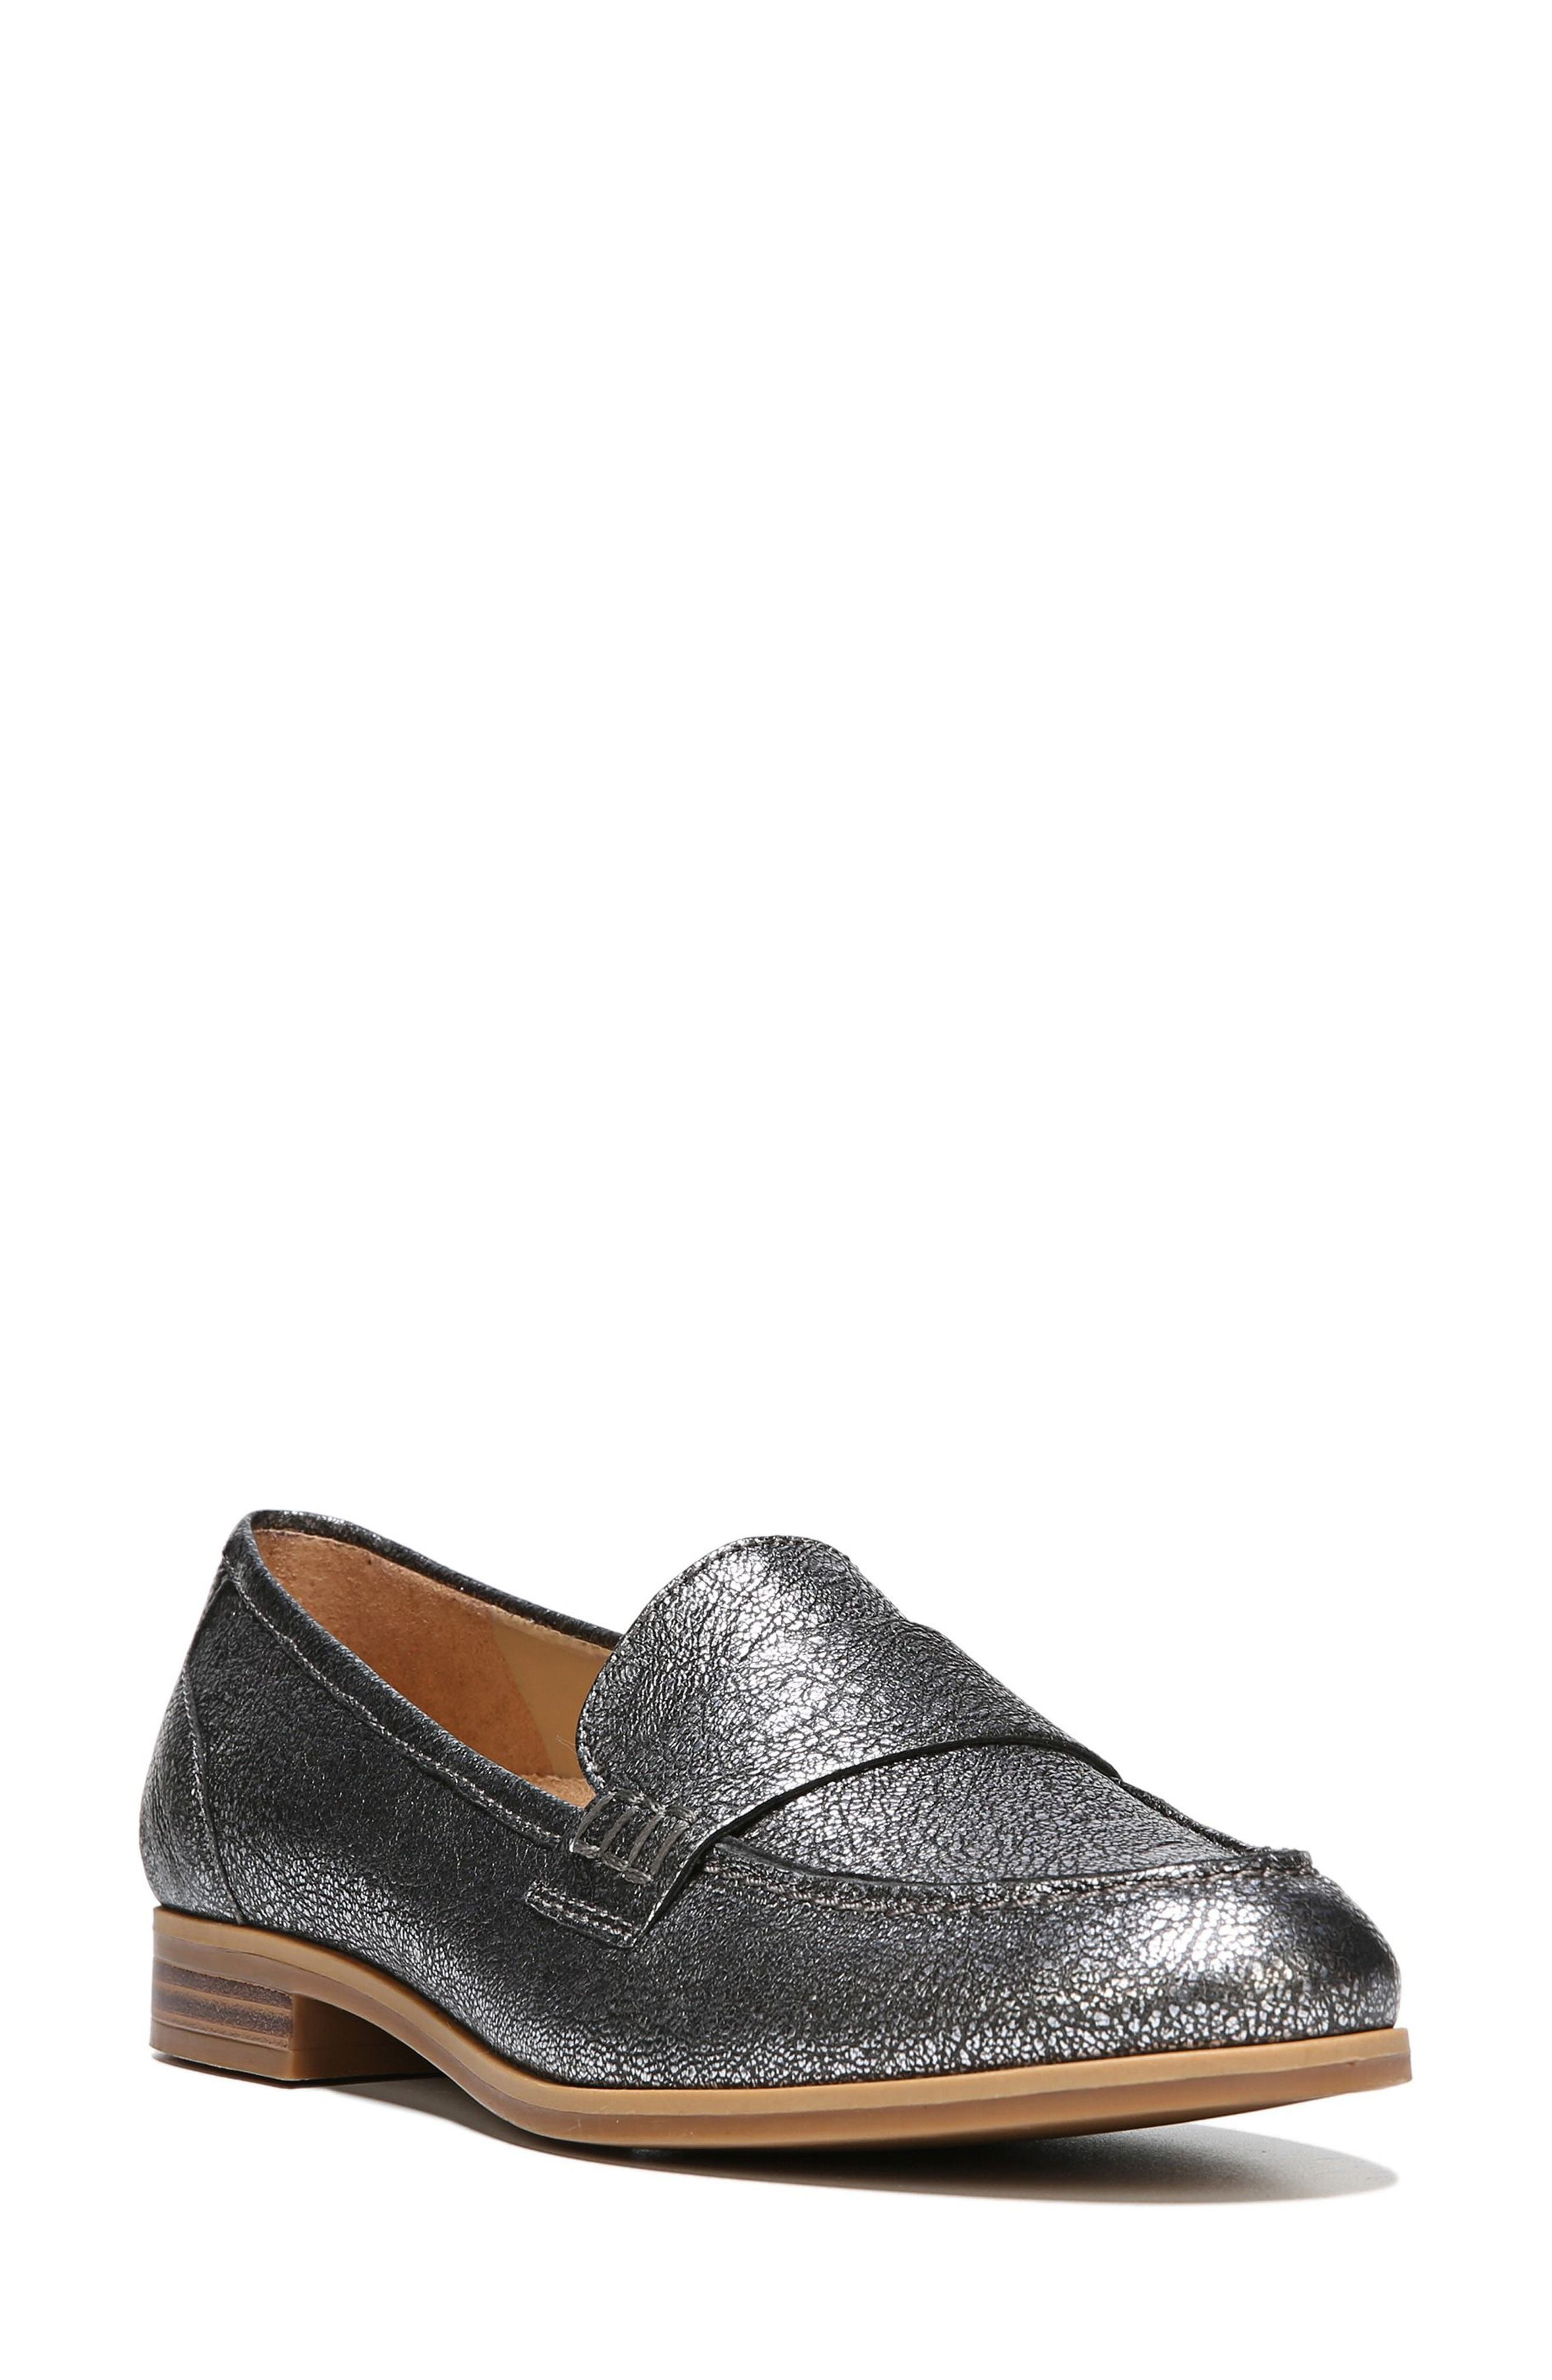 Veronica Loafer,                             Main thumbnail 1, color,                             Silver Leather